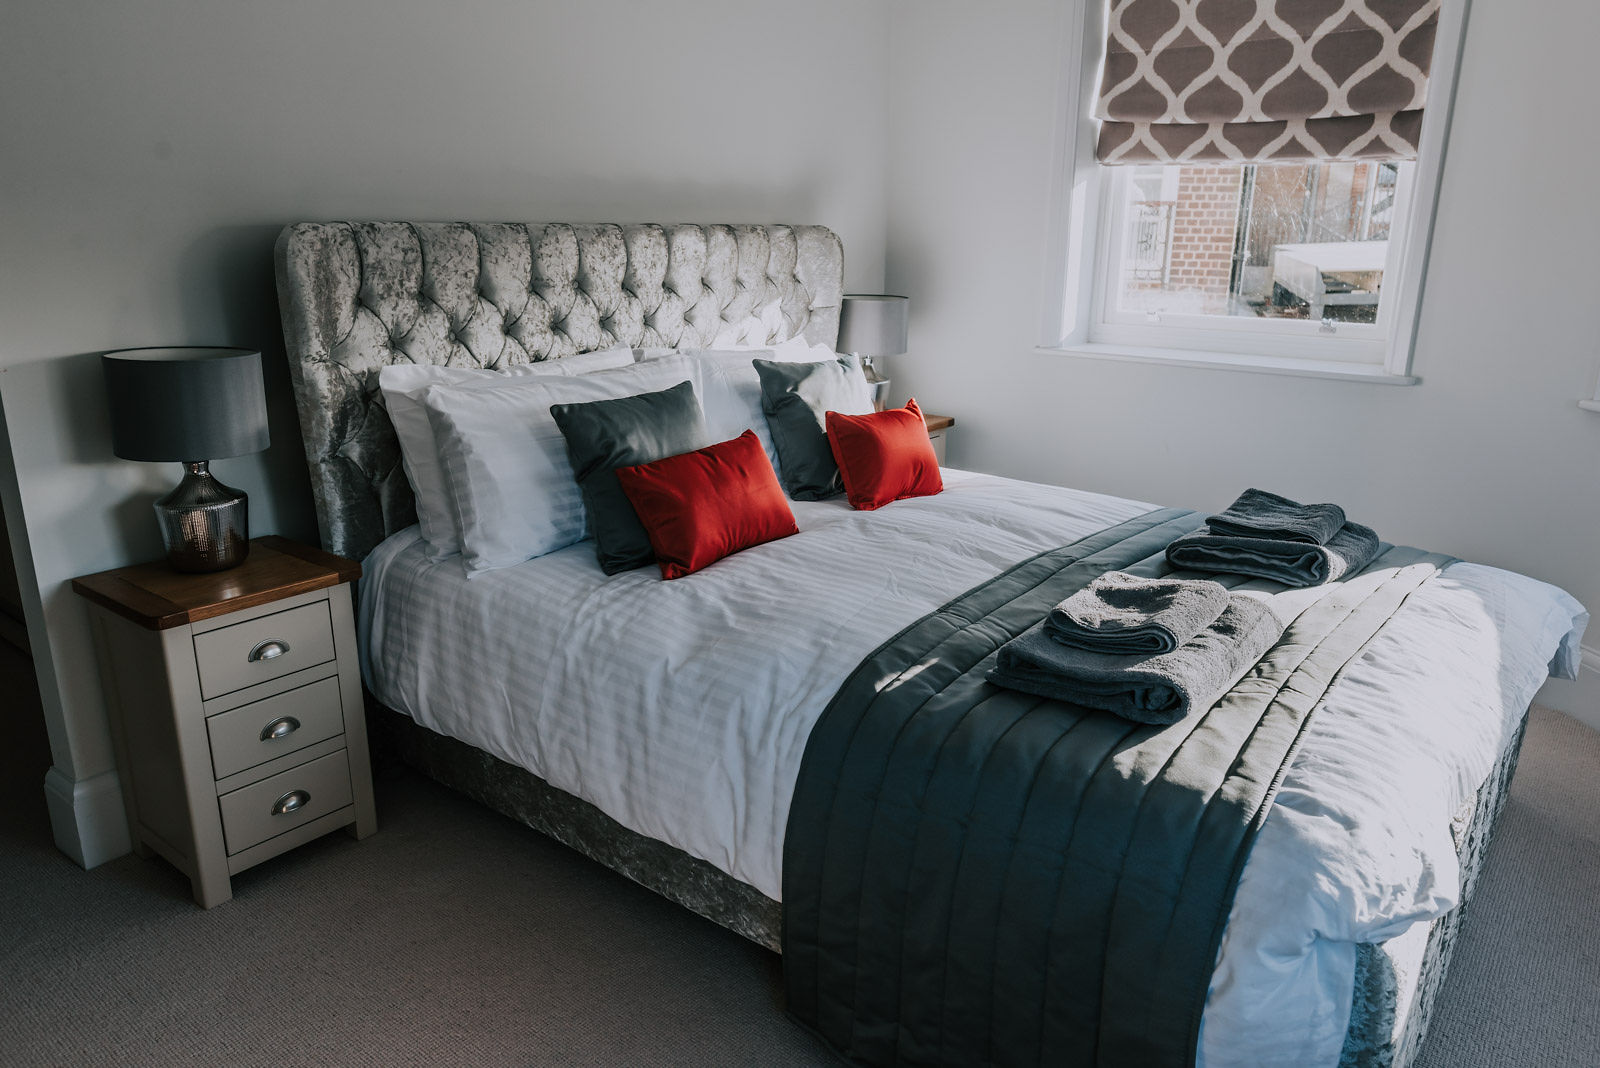 Bedroom at Cavendish House